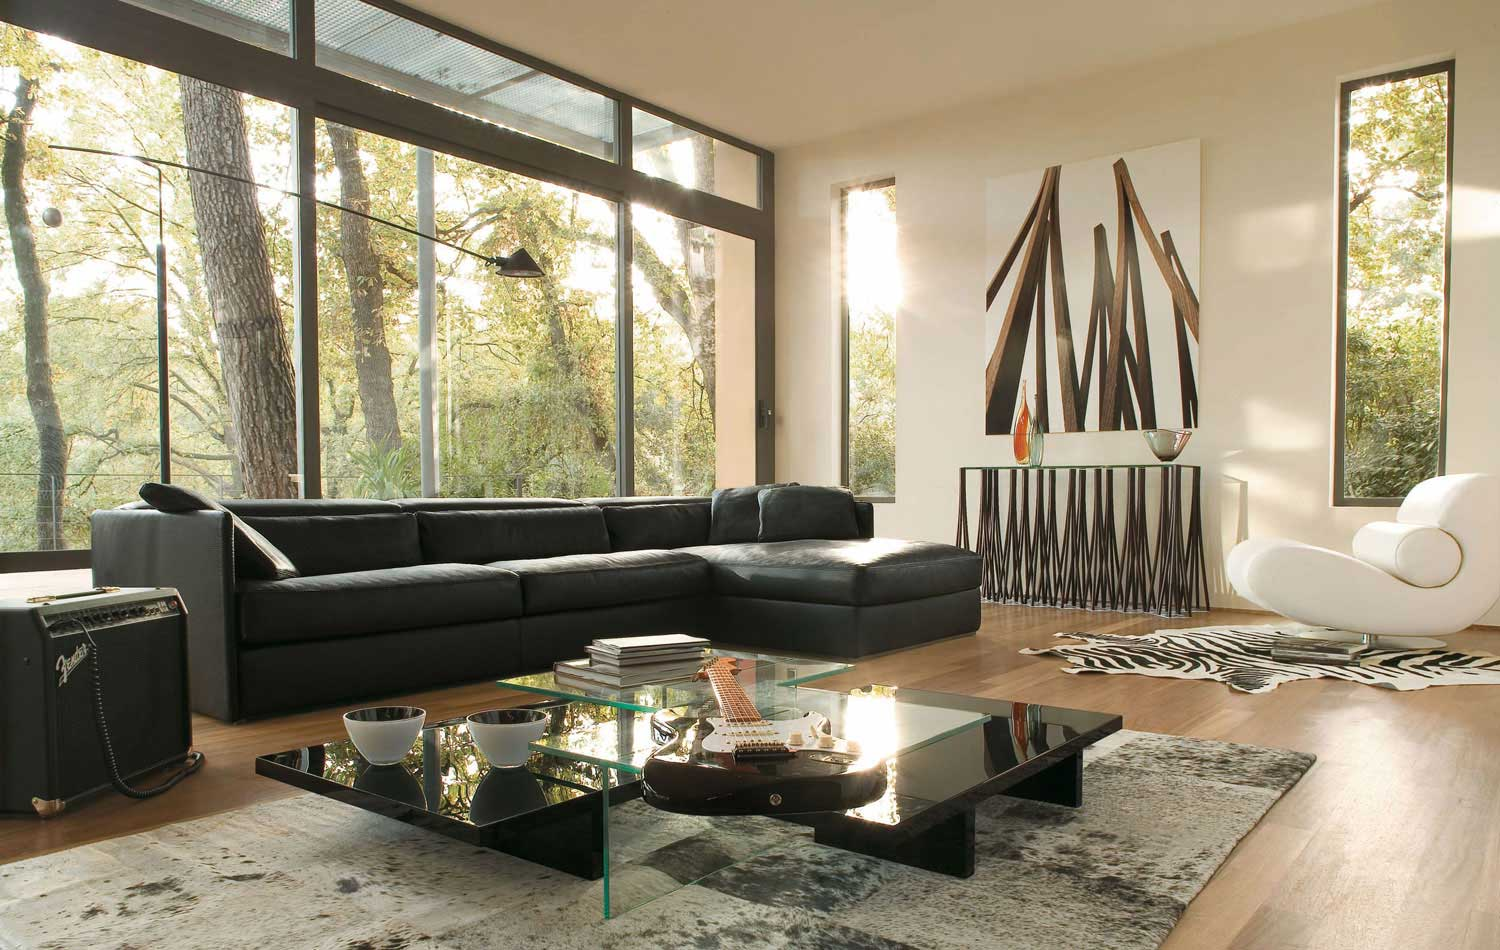 Couch Schwarz Living Room Inspiration: 120 Modern Sofas By Roche Bobois